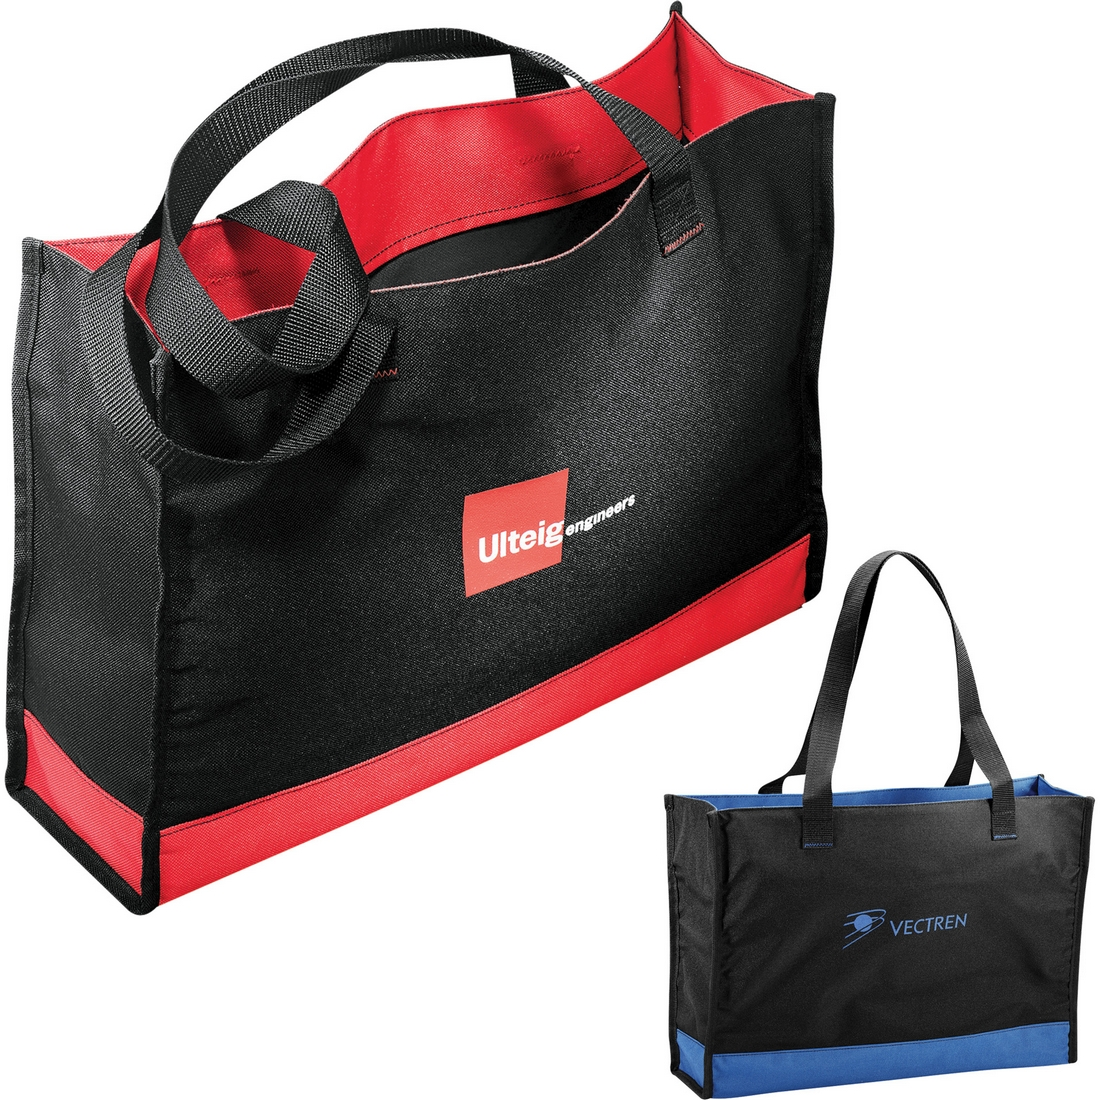 Carry-All Meeting Tote - Wider Style Perfect For Tradeshows